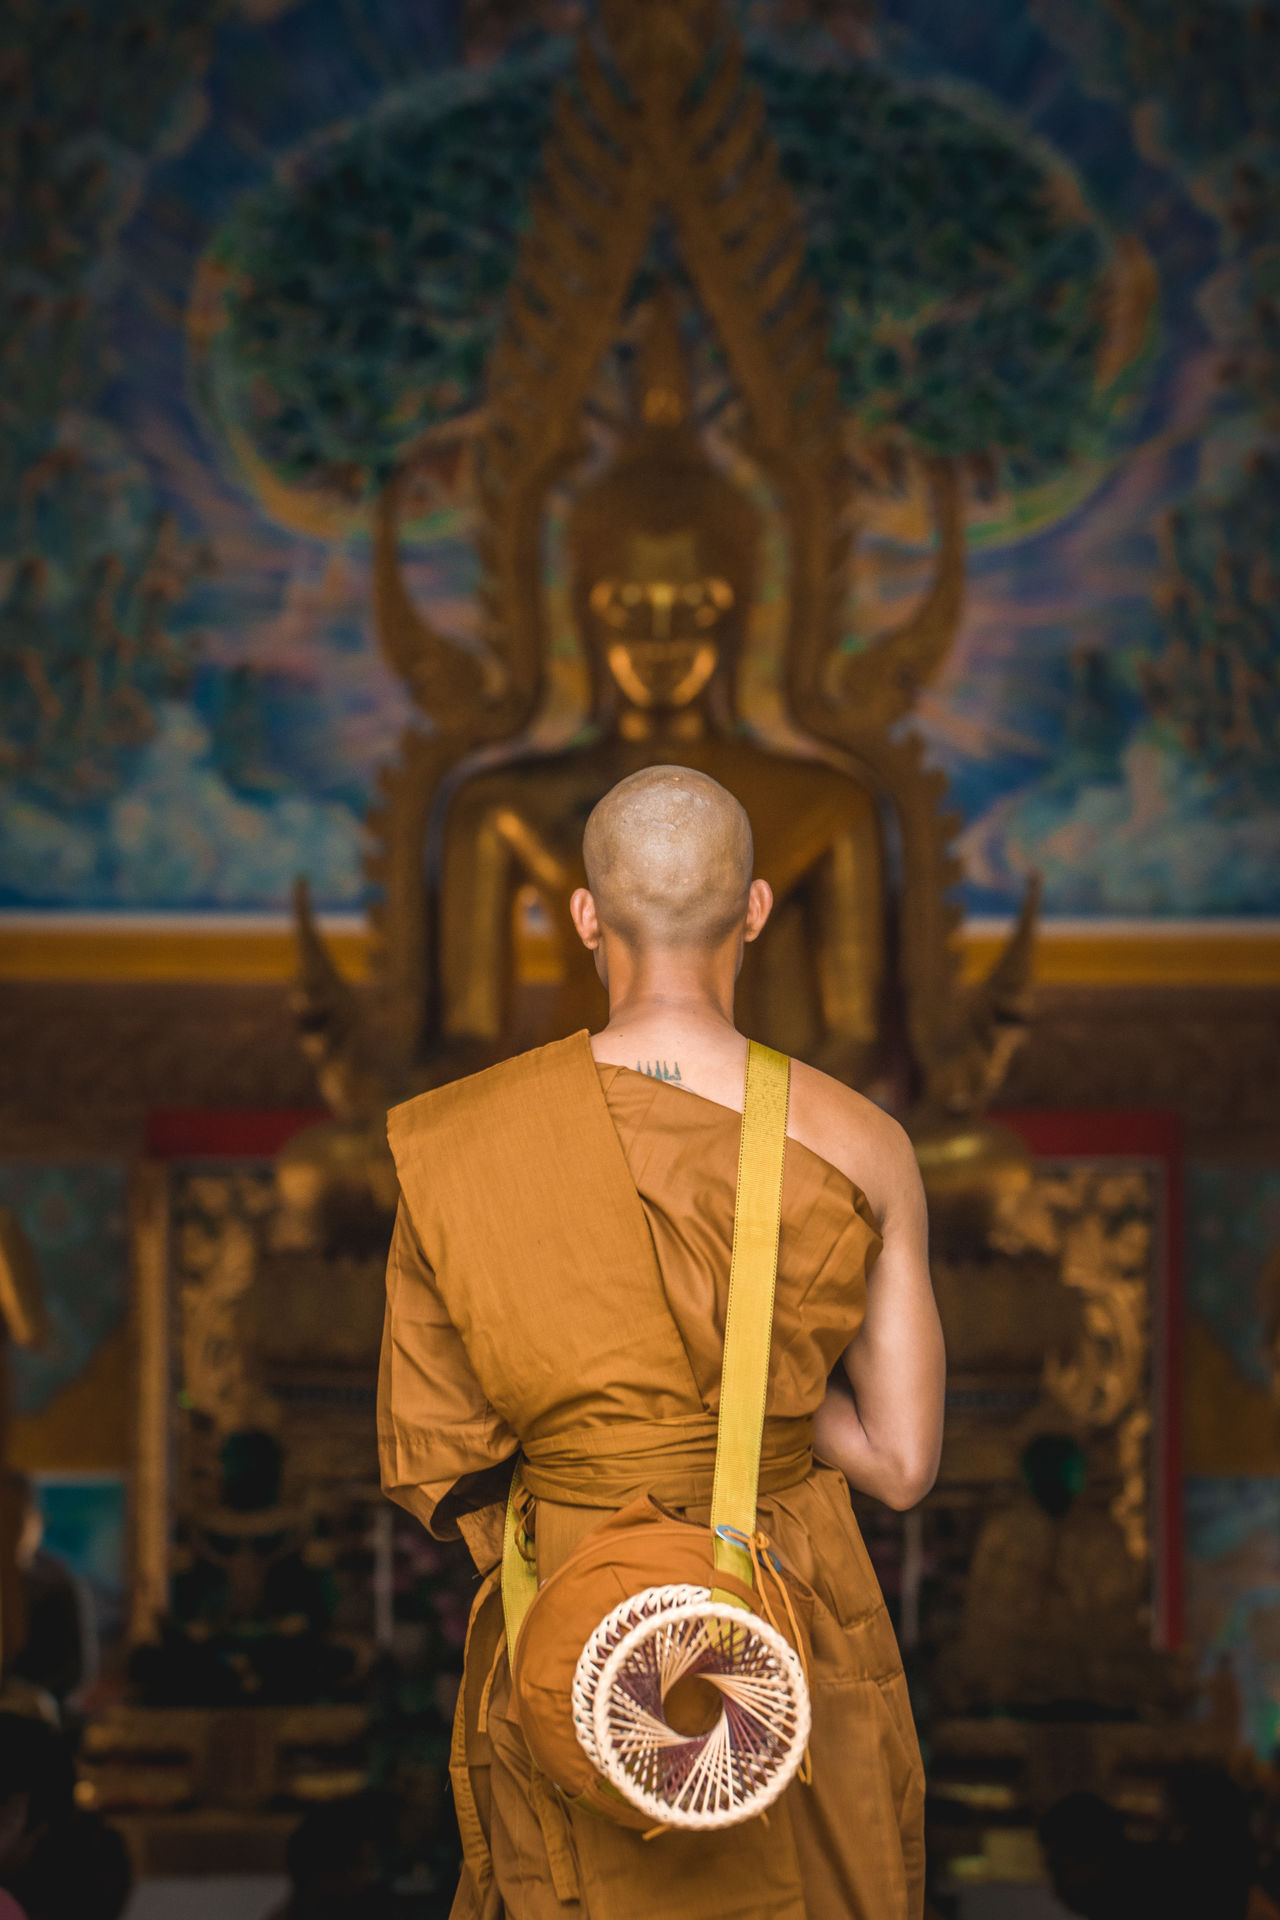 Rear view of monk standing against buddha statue in temple